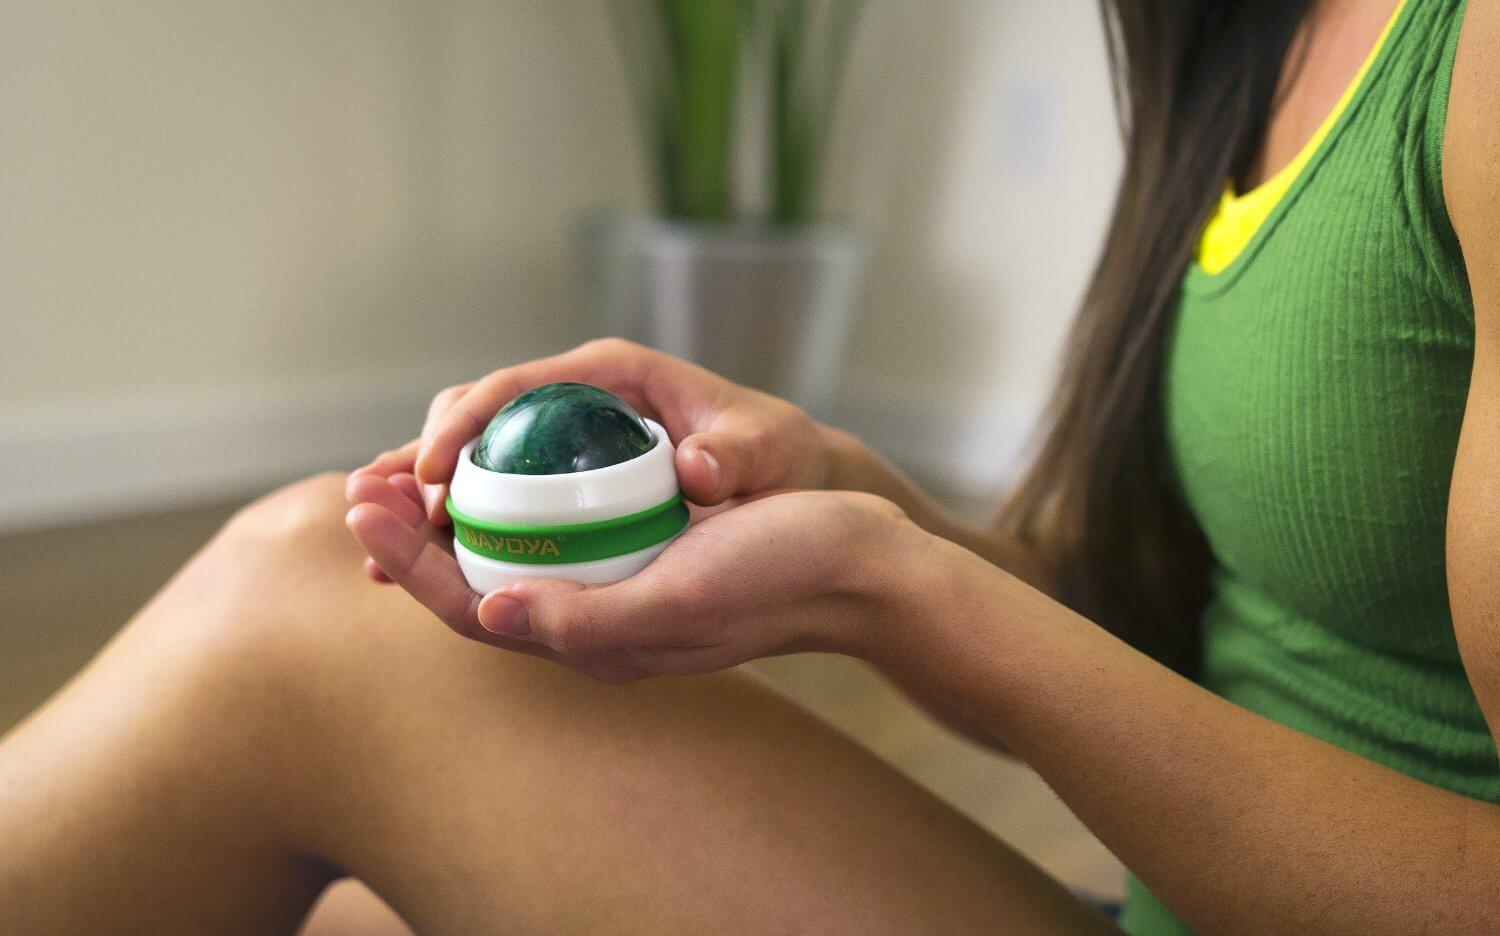 7 Best Massage Balls Reviewed - What Should You Buy in 2019?